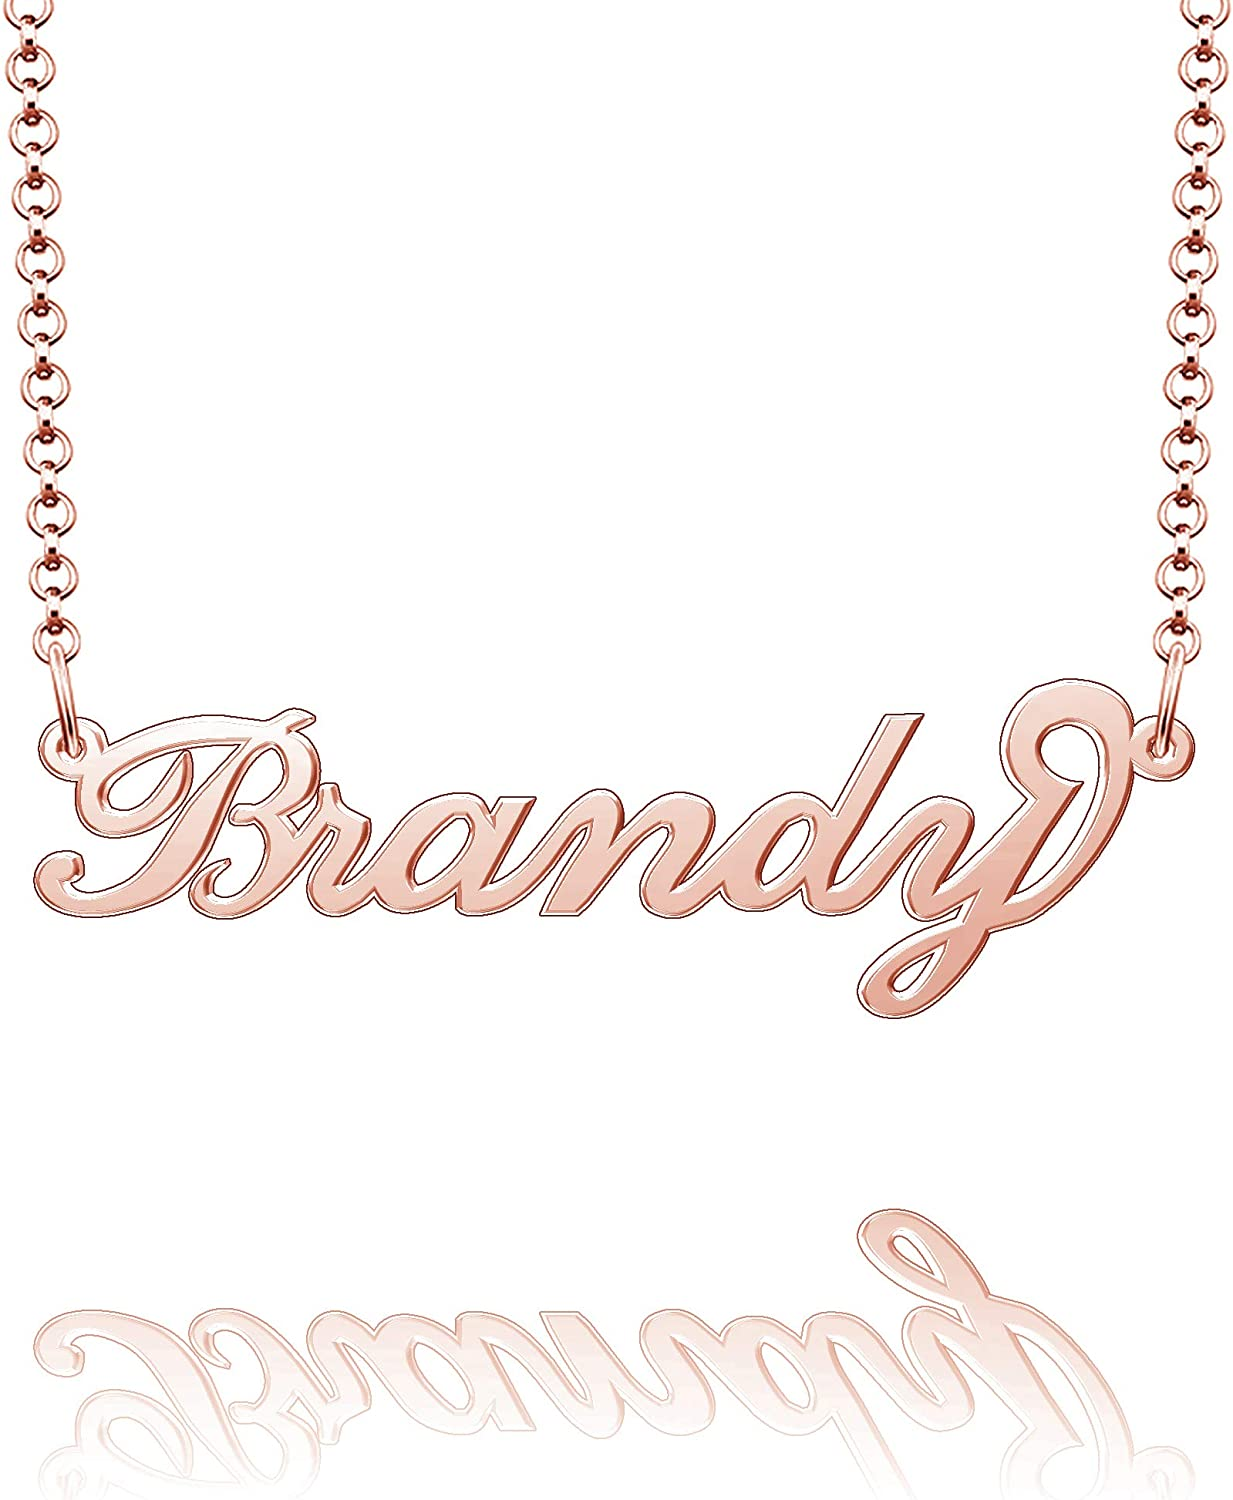 Moonlight Collections Brandy Personalized Name Necklace Custom Sterling Silver Jewelry